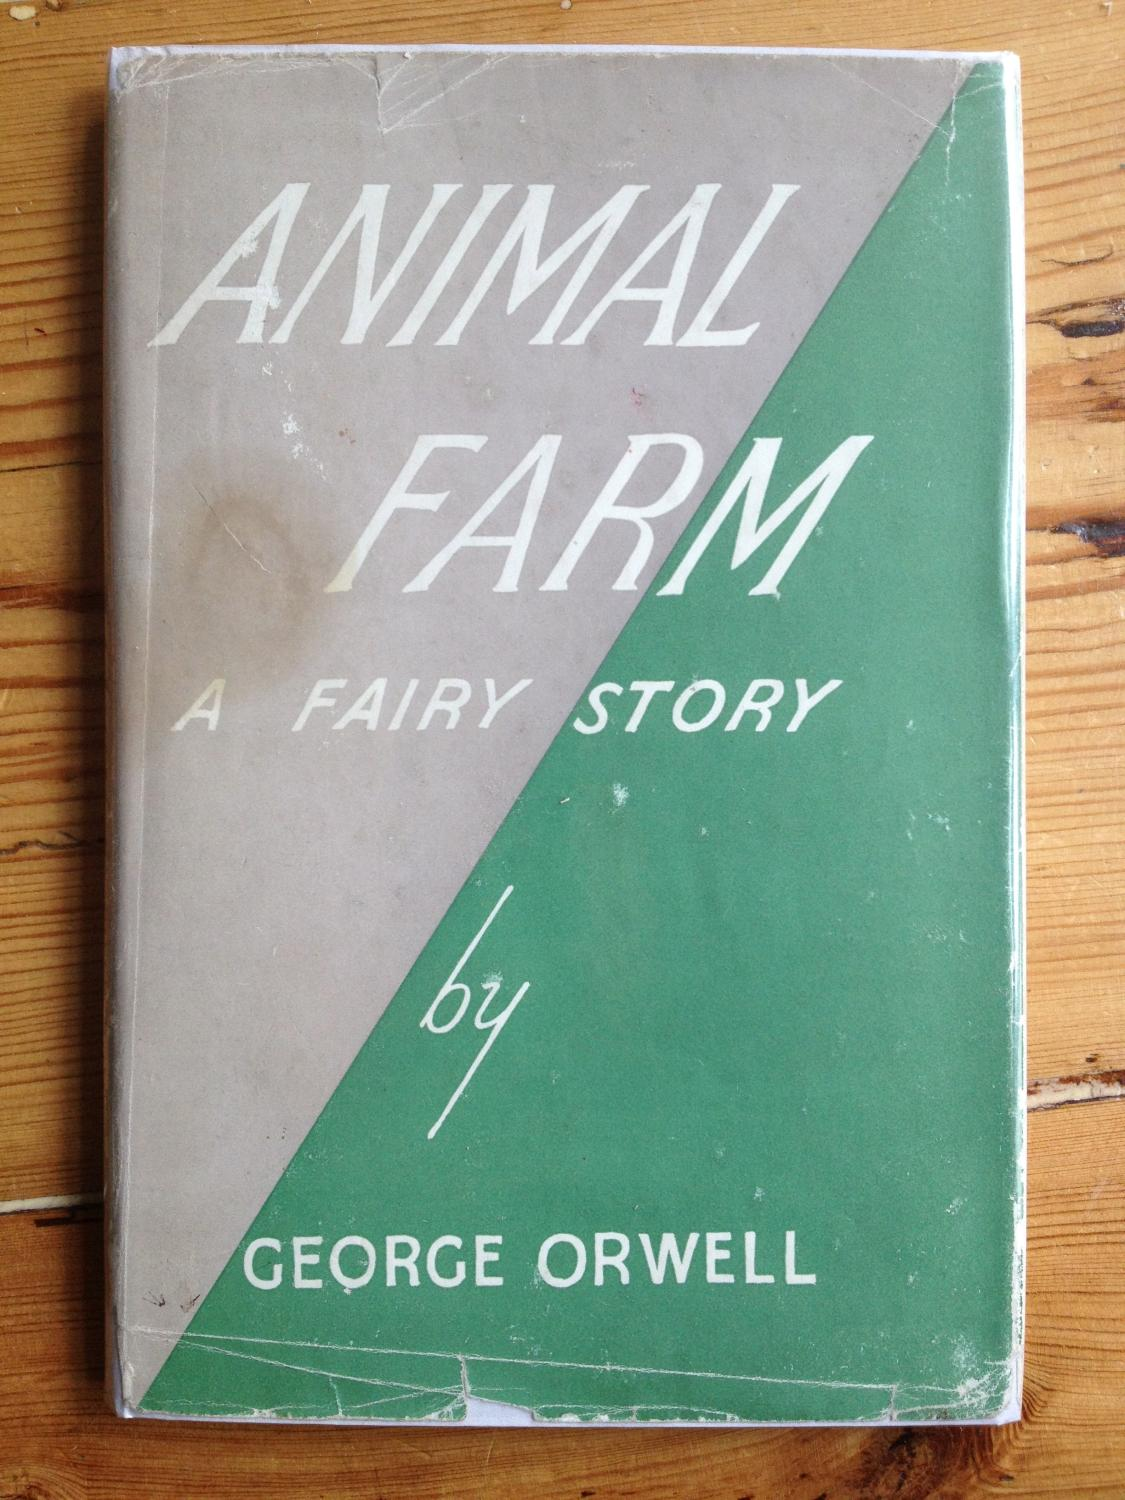 animal farm power corrupts and absolute power corrupts power tends to corrupt and absolute power corrupts